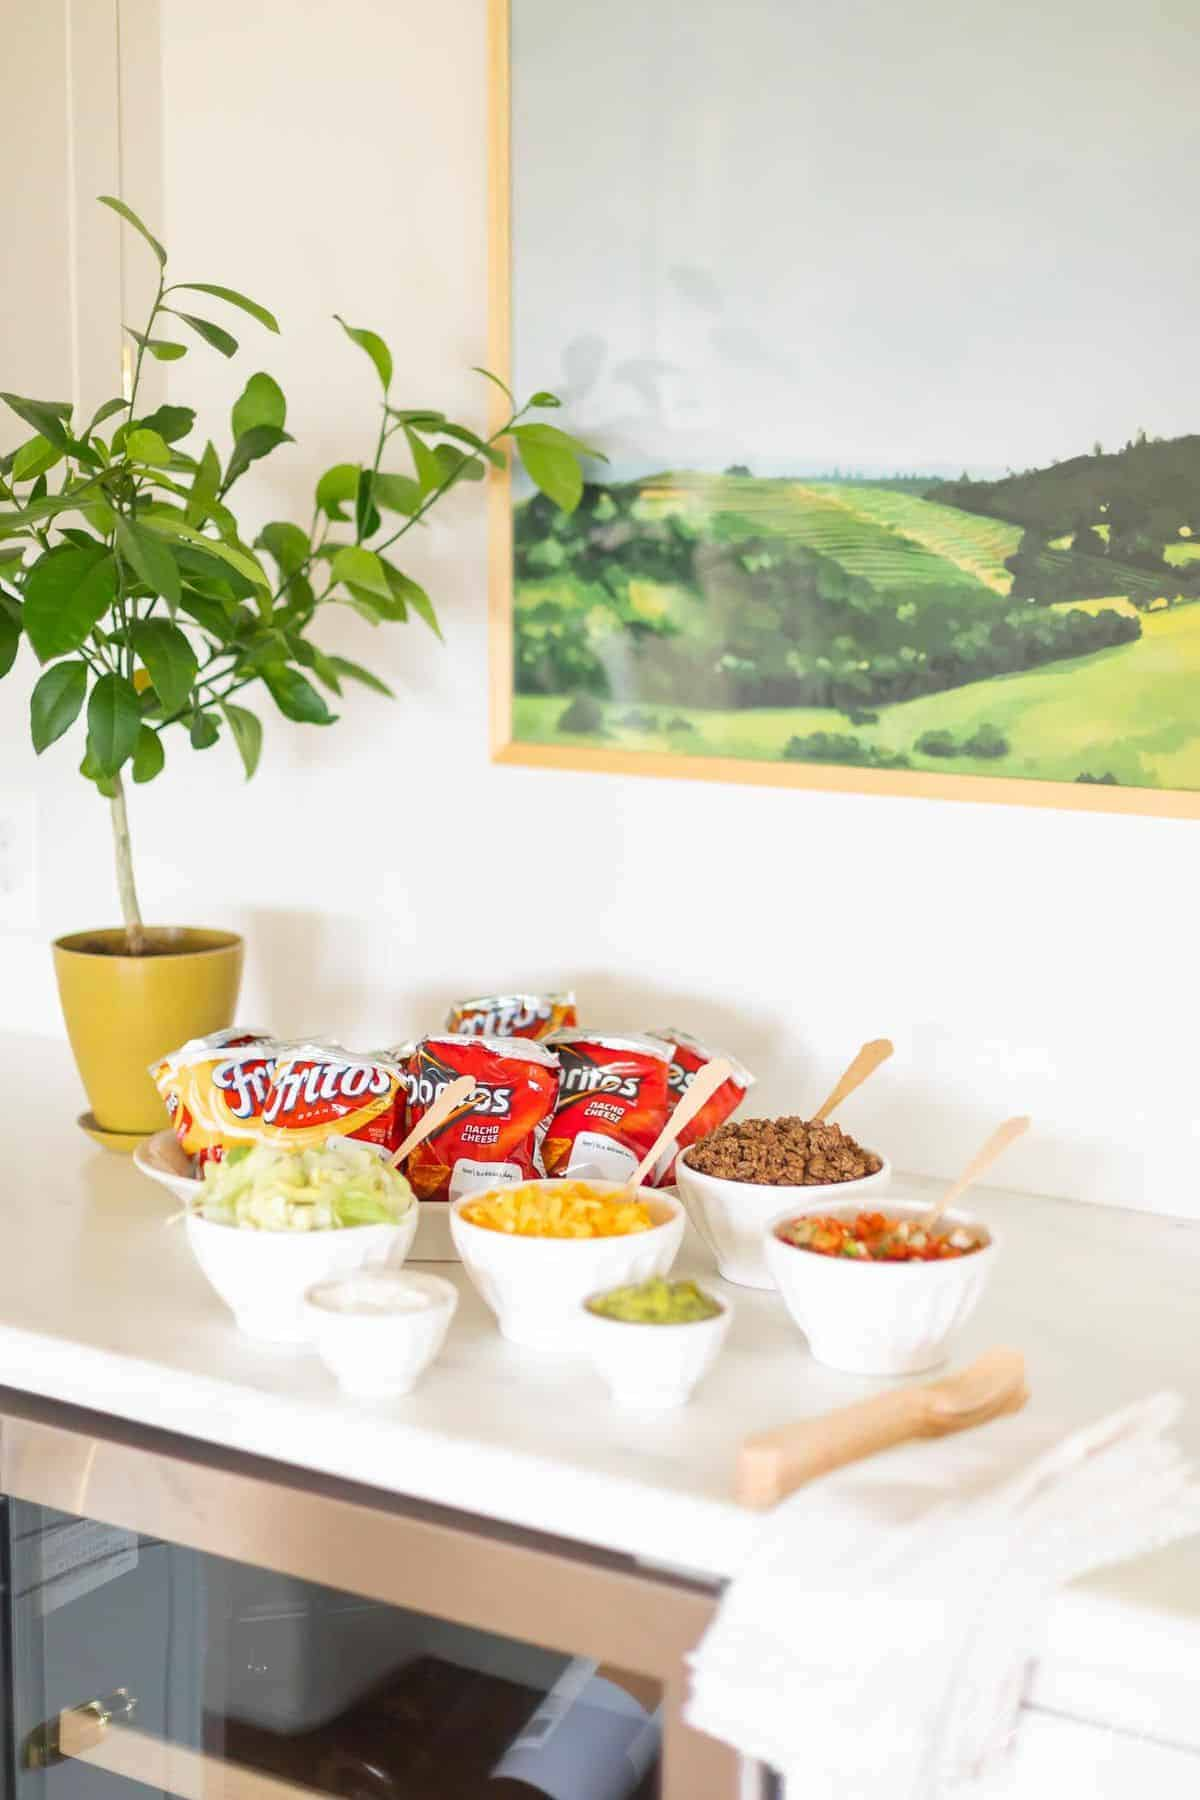 Kitchen walking taco bar display, with chip bags and white bowls of taco toppings.